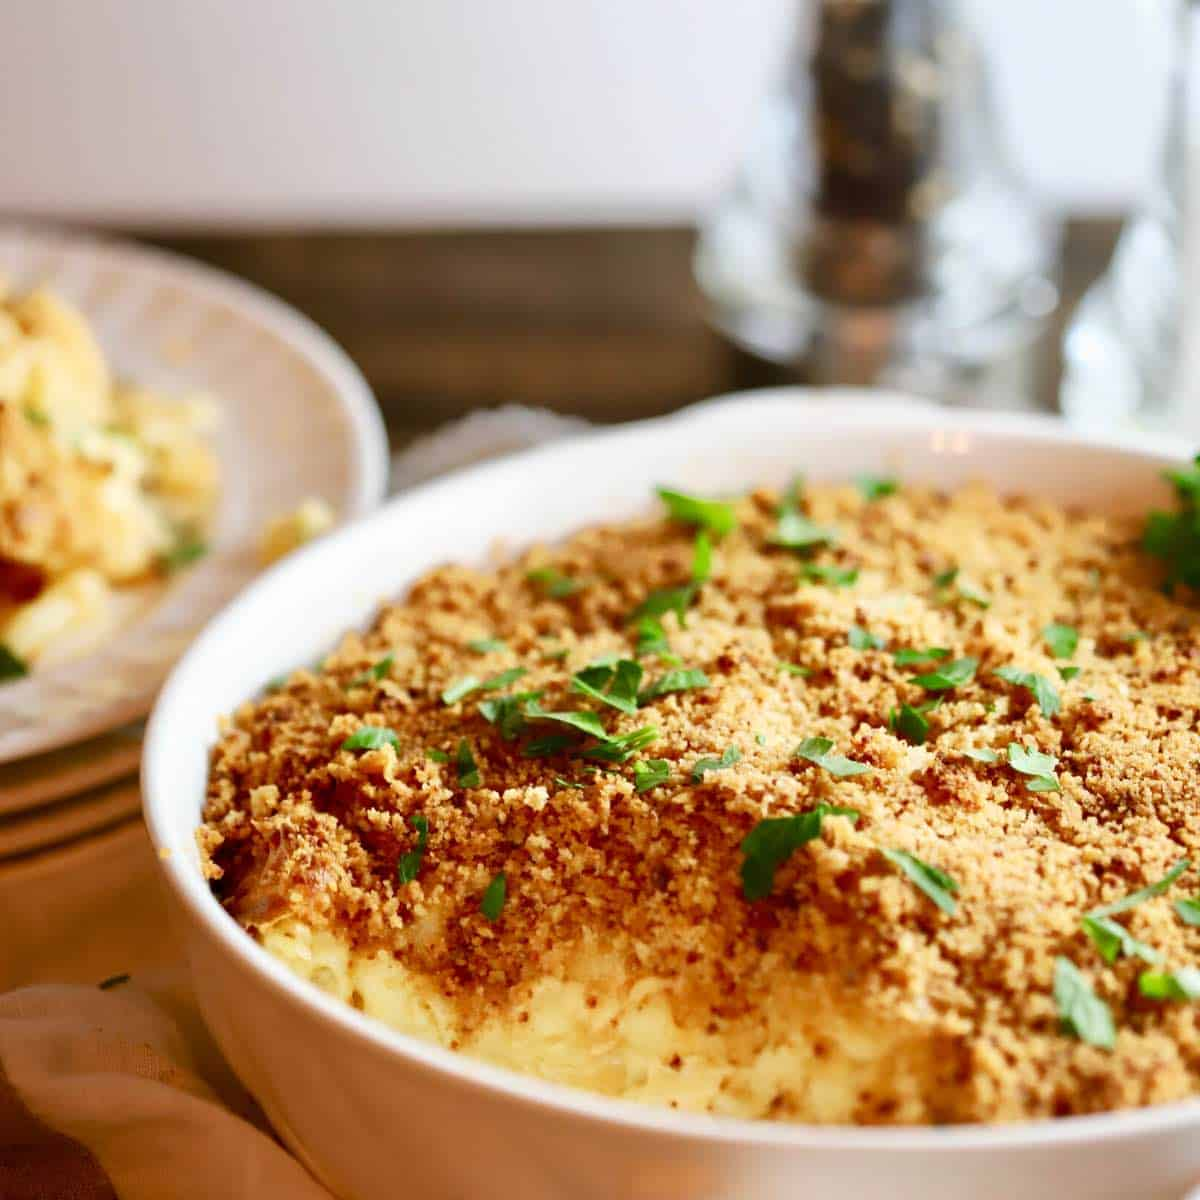 Southern Style Baked Mac and Cheese topped with Ritx cracker crumbs and parsley